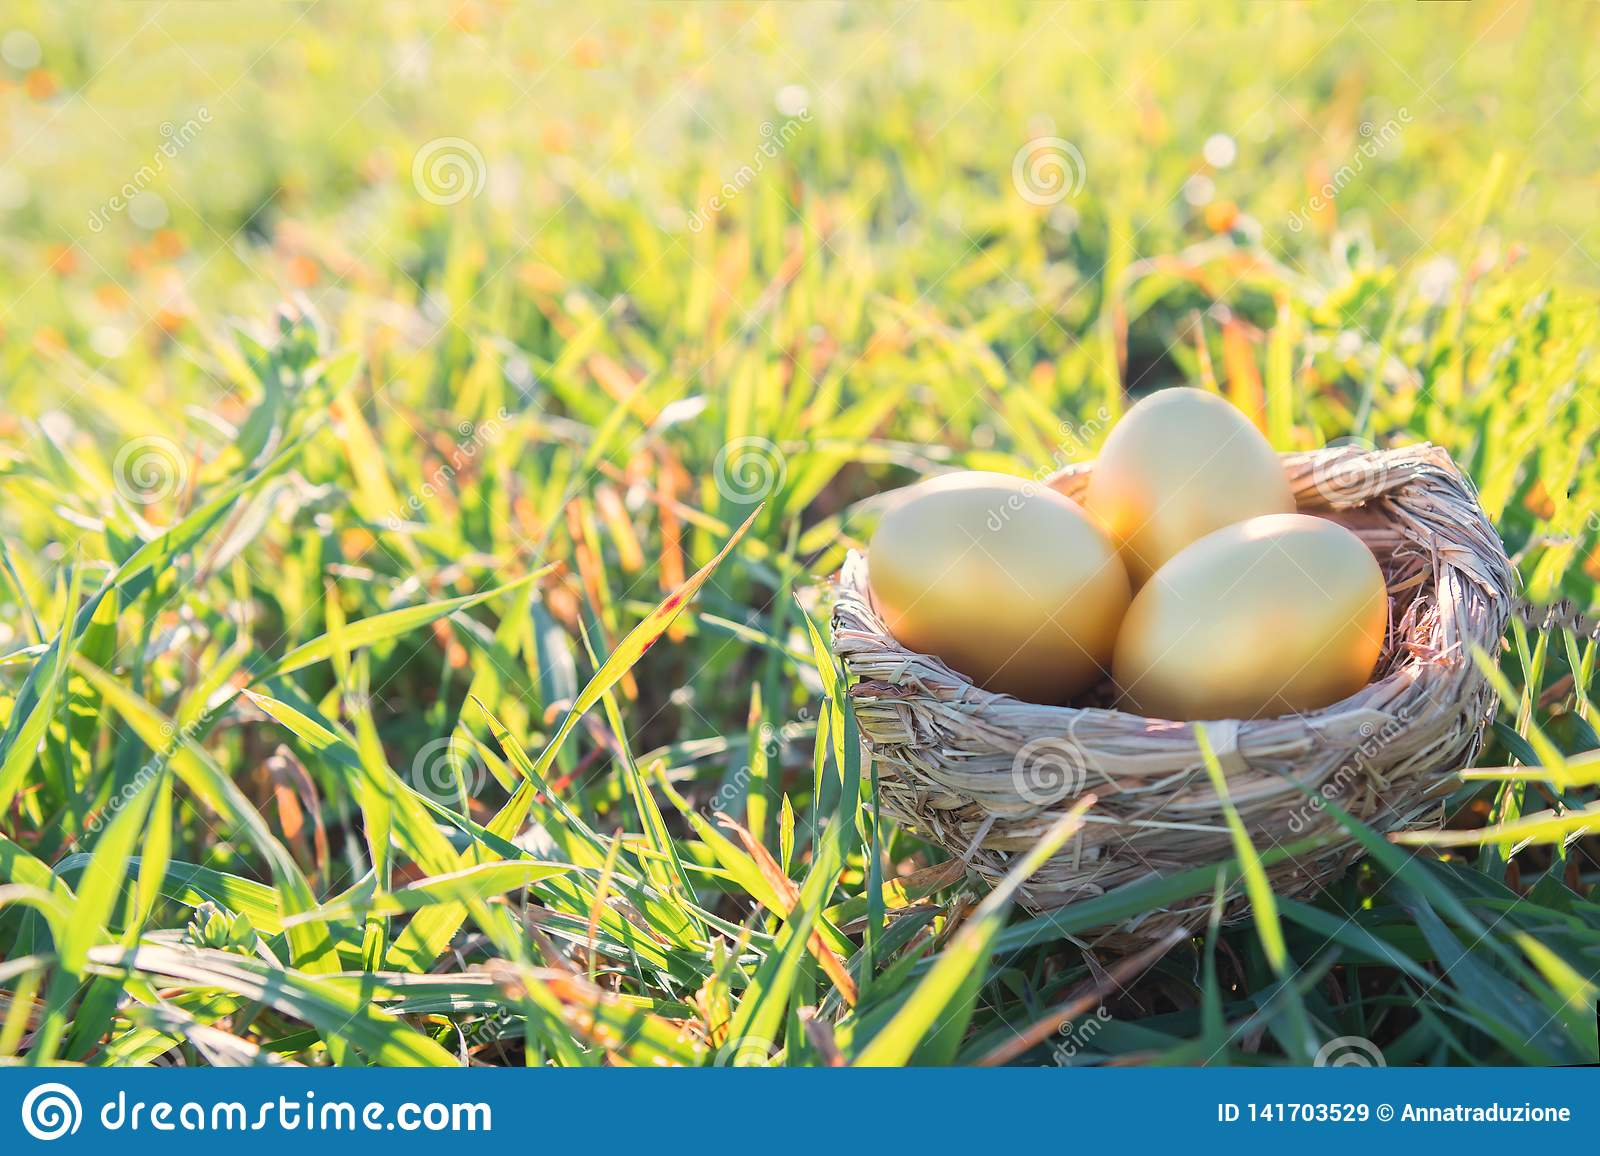 Pthree golden eggs on grass to represent wealth and luck and easter concept